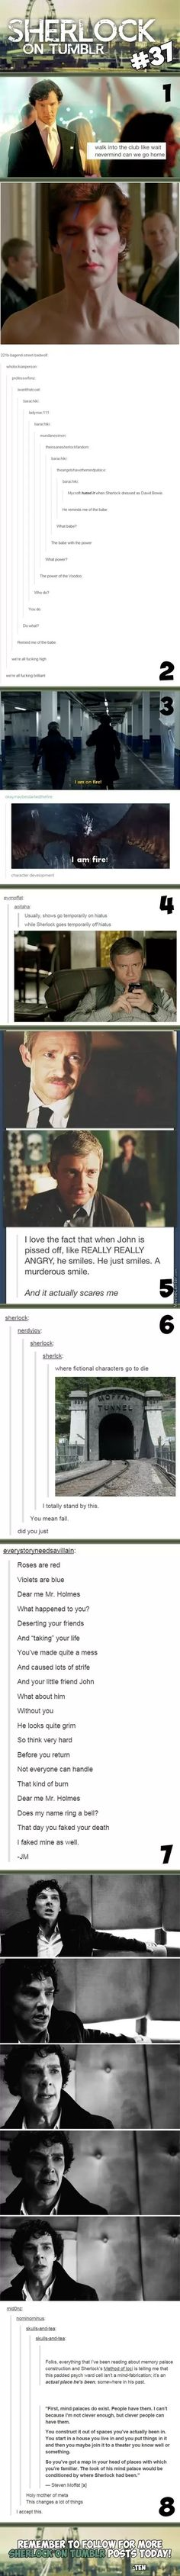 Sherlock On Tumblr #37